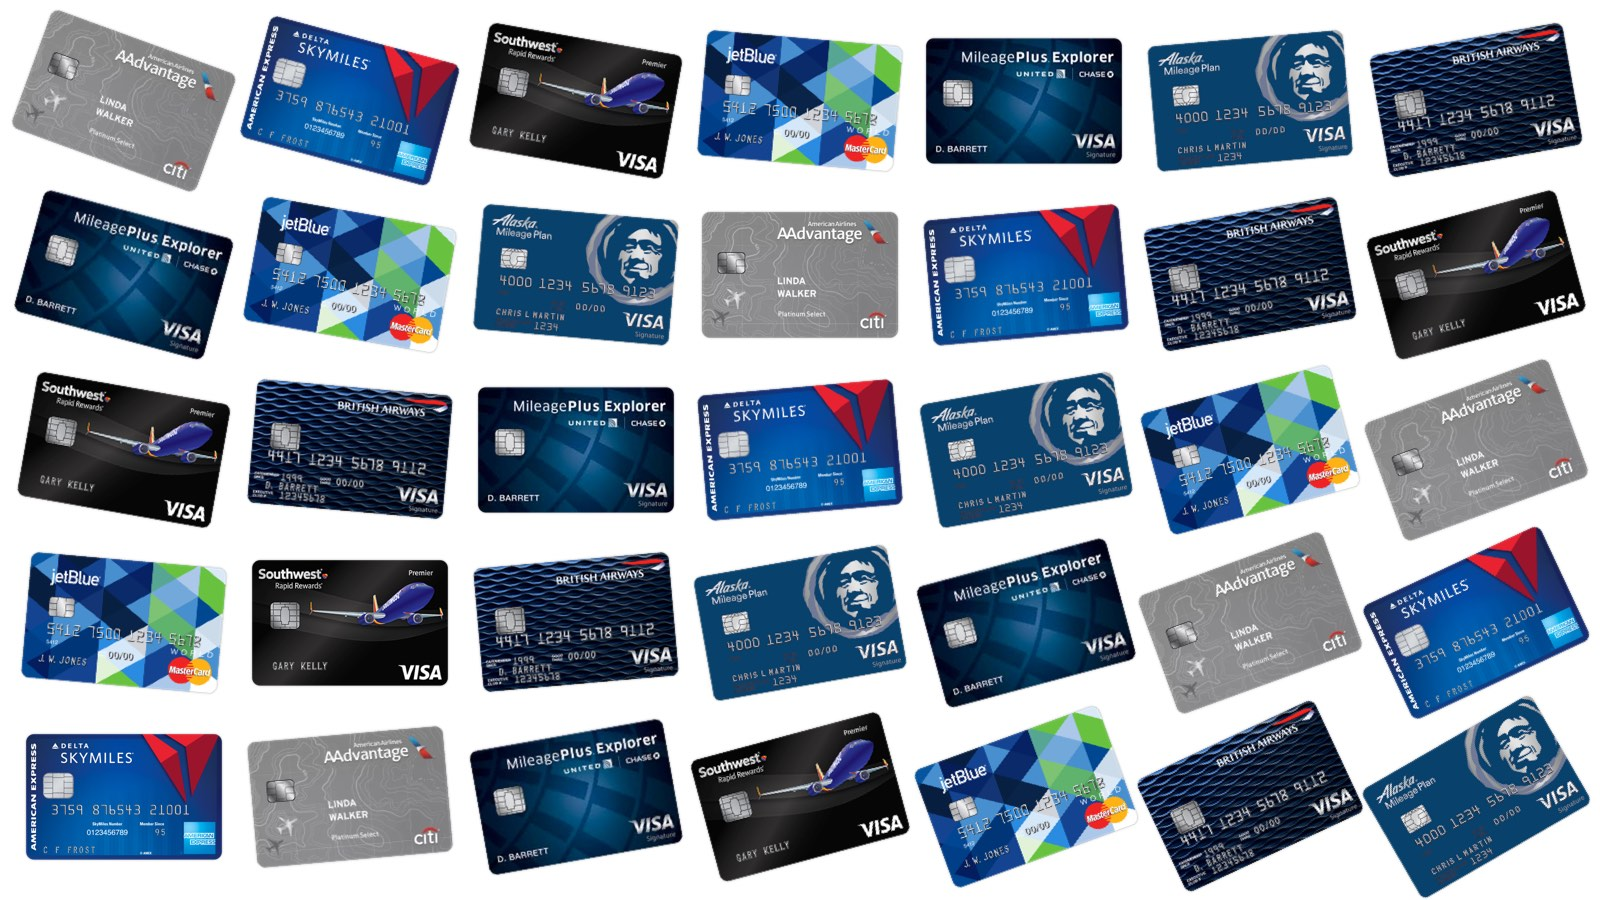 What S The Point Of Airline Credit Cards In A Sapphire